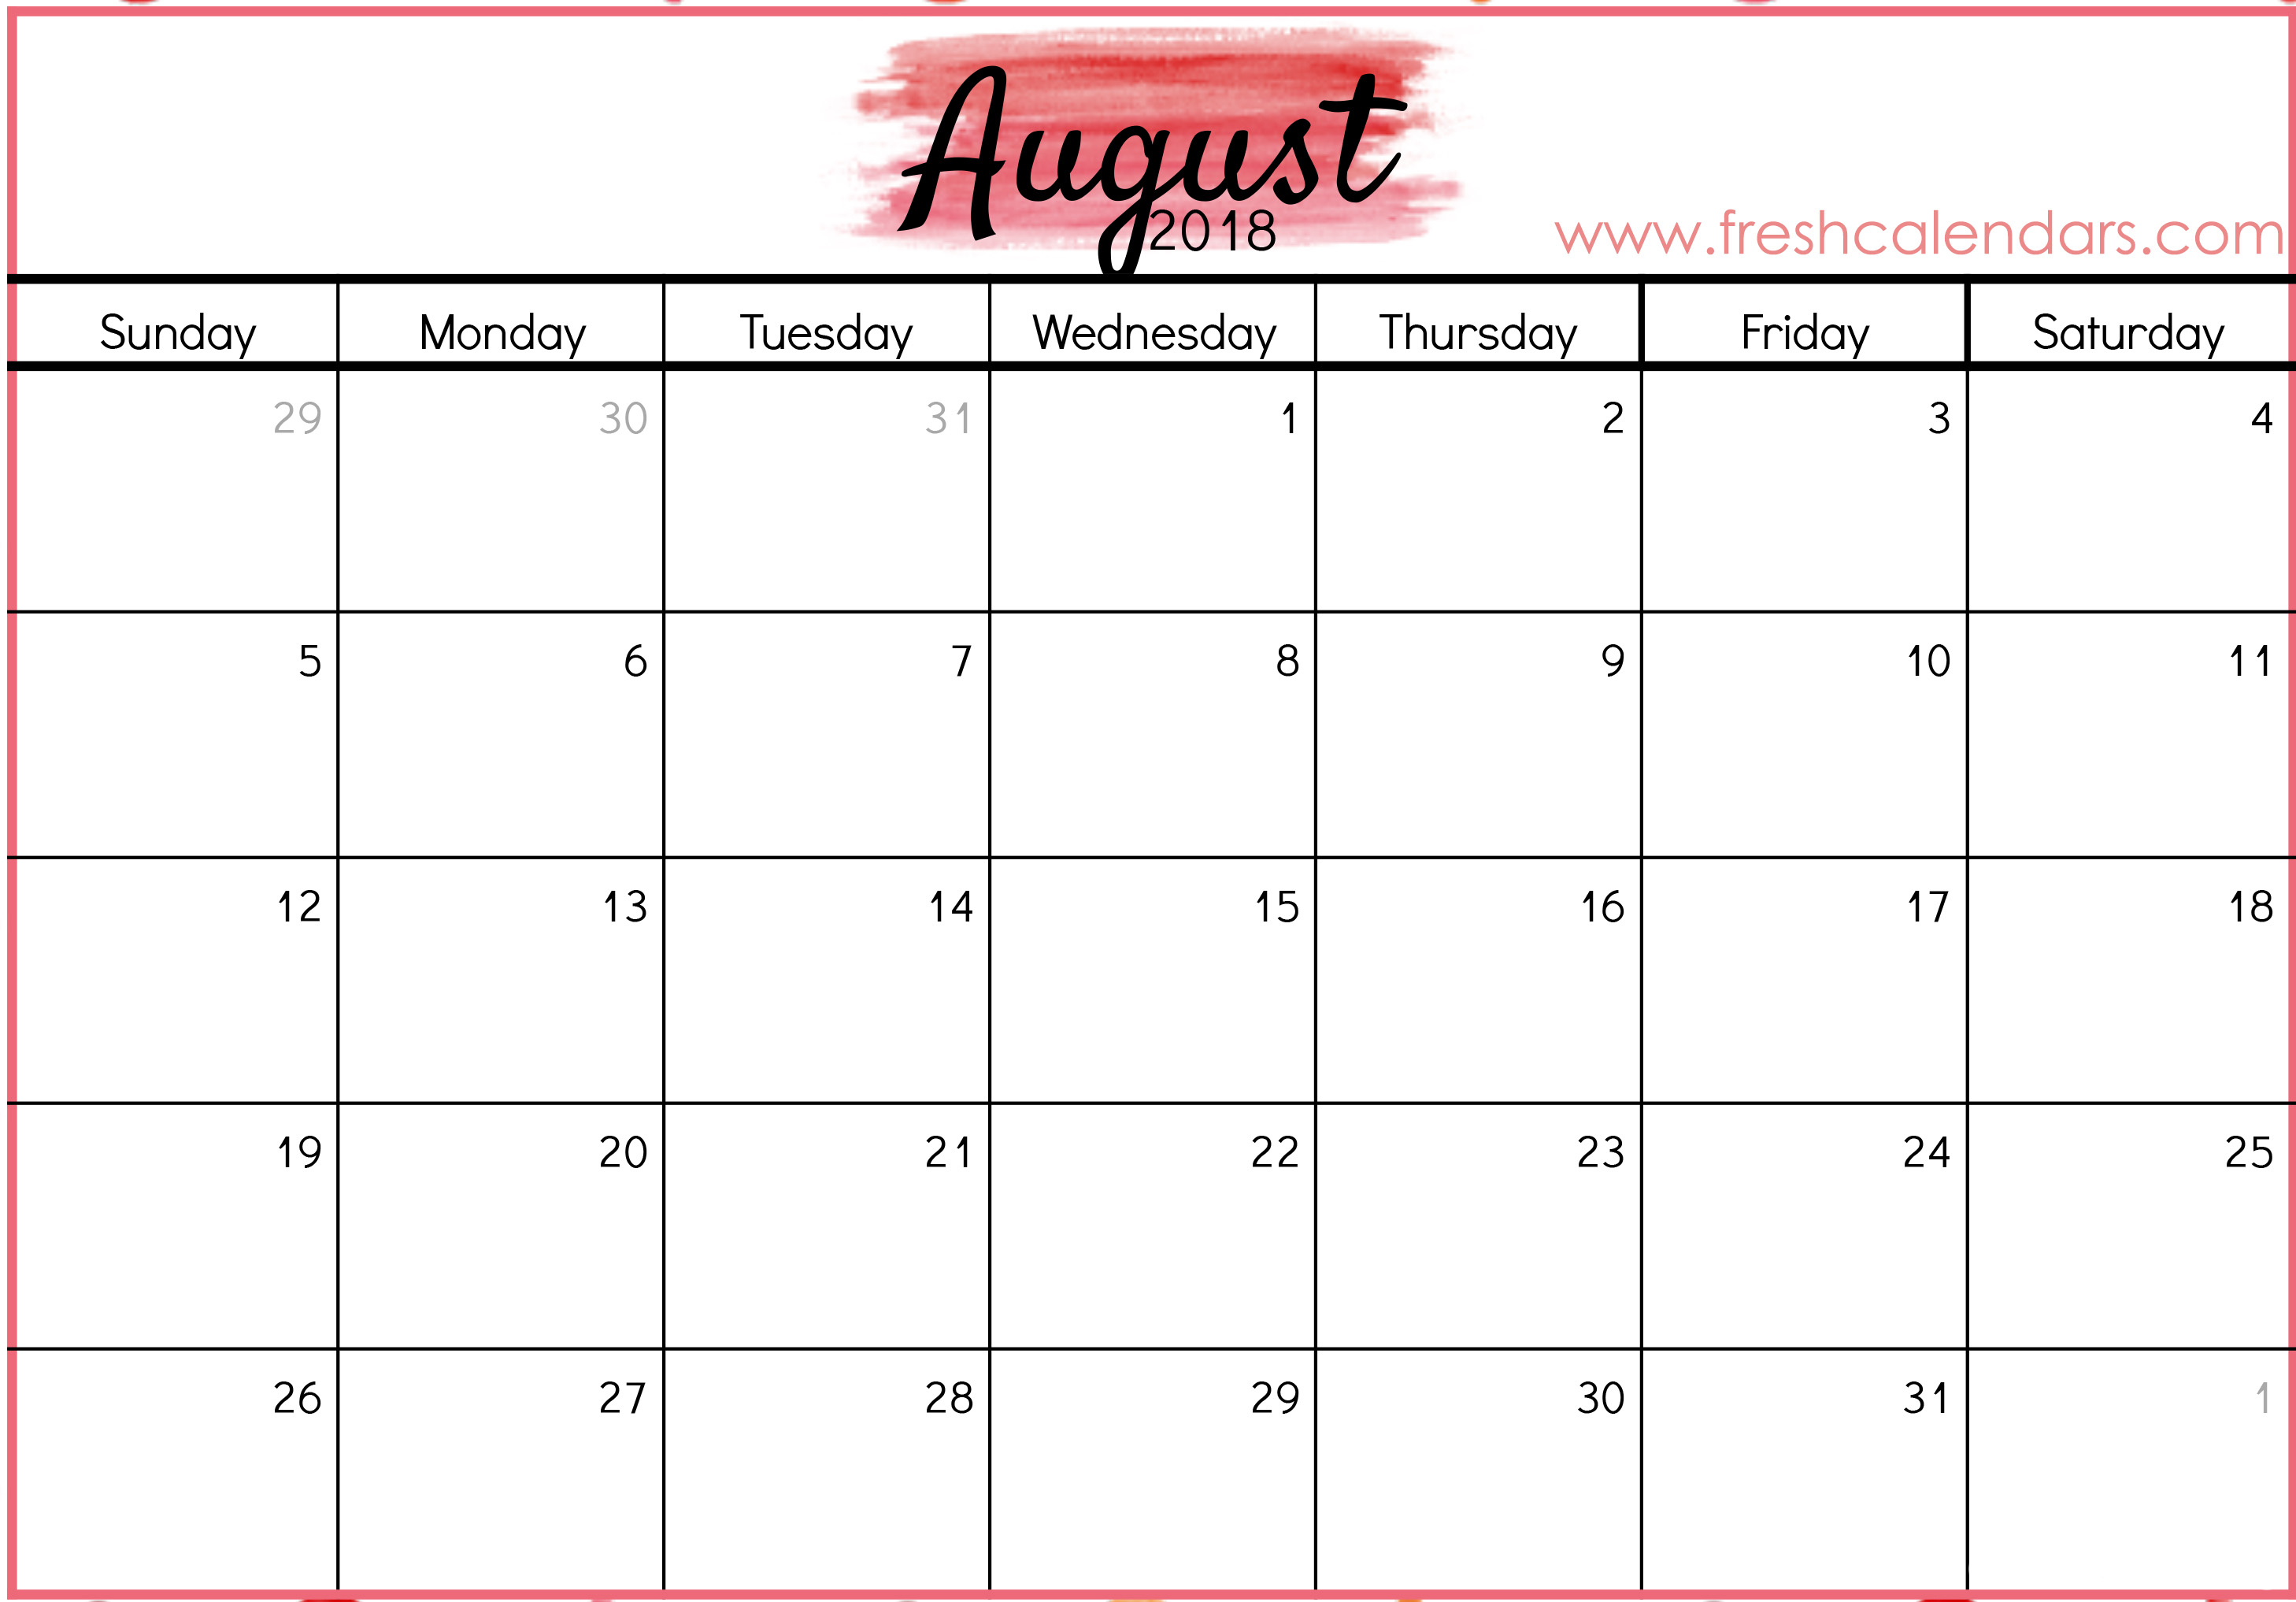 Printable Calendar To Write On | Printable Calendar 2019 intended for Blank Calendar To Write On August